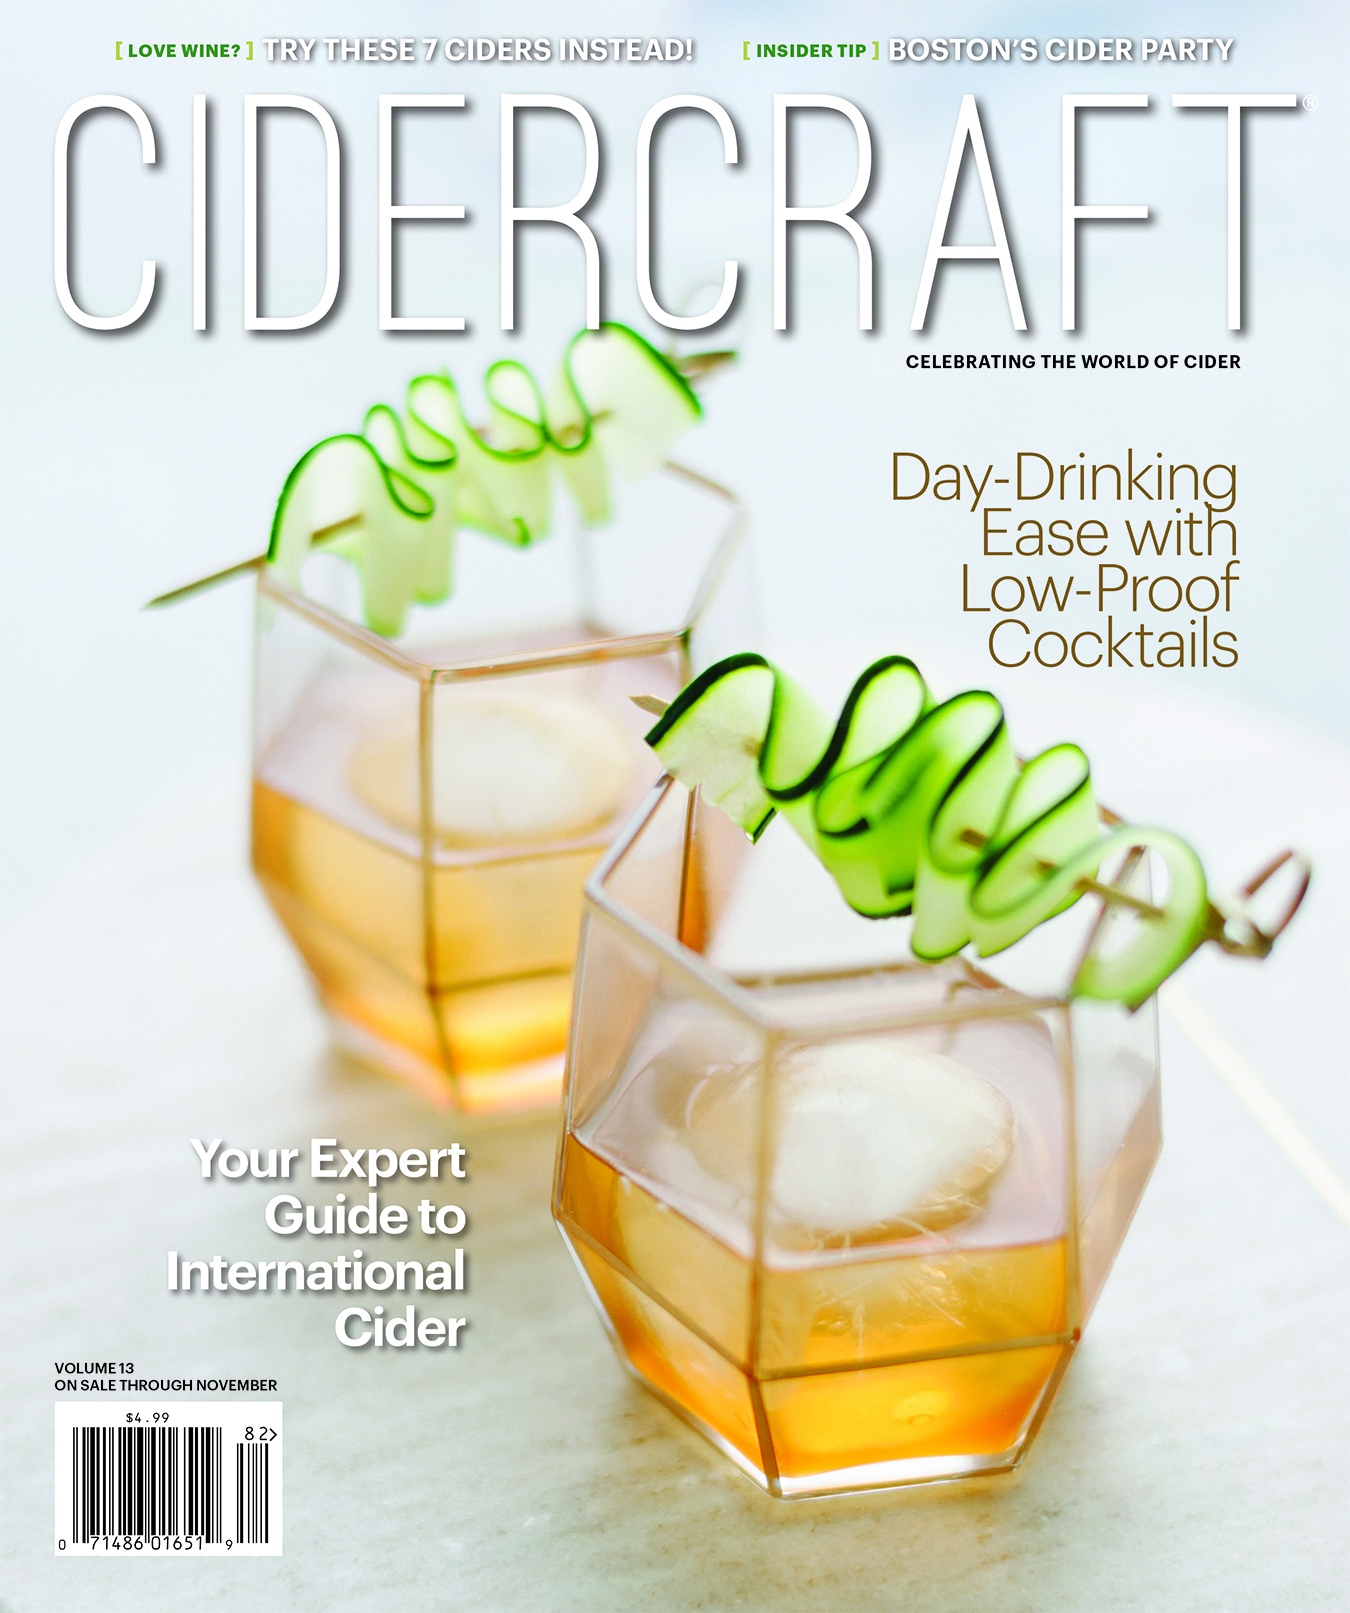 Cidercraft_Vol13.jpg